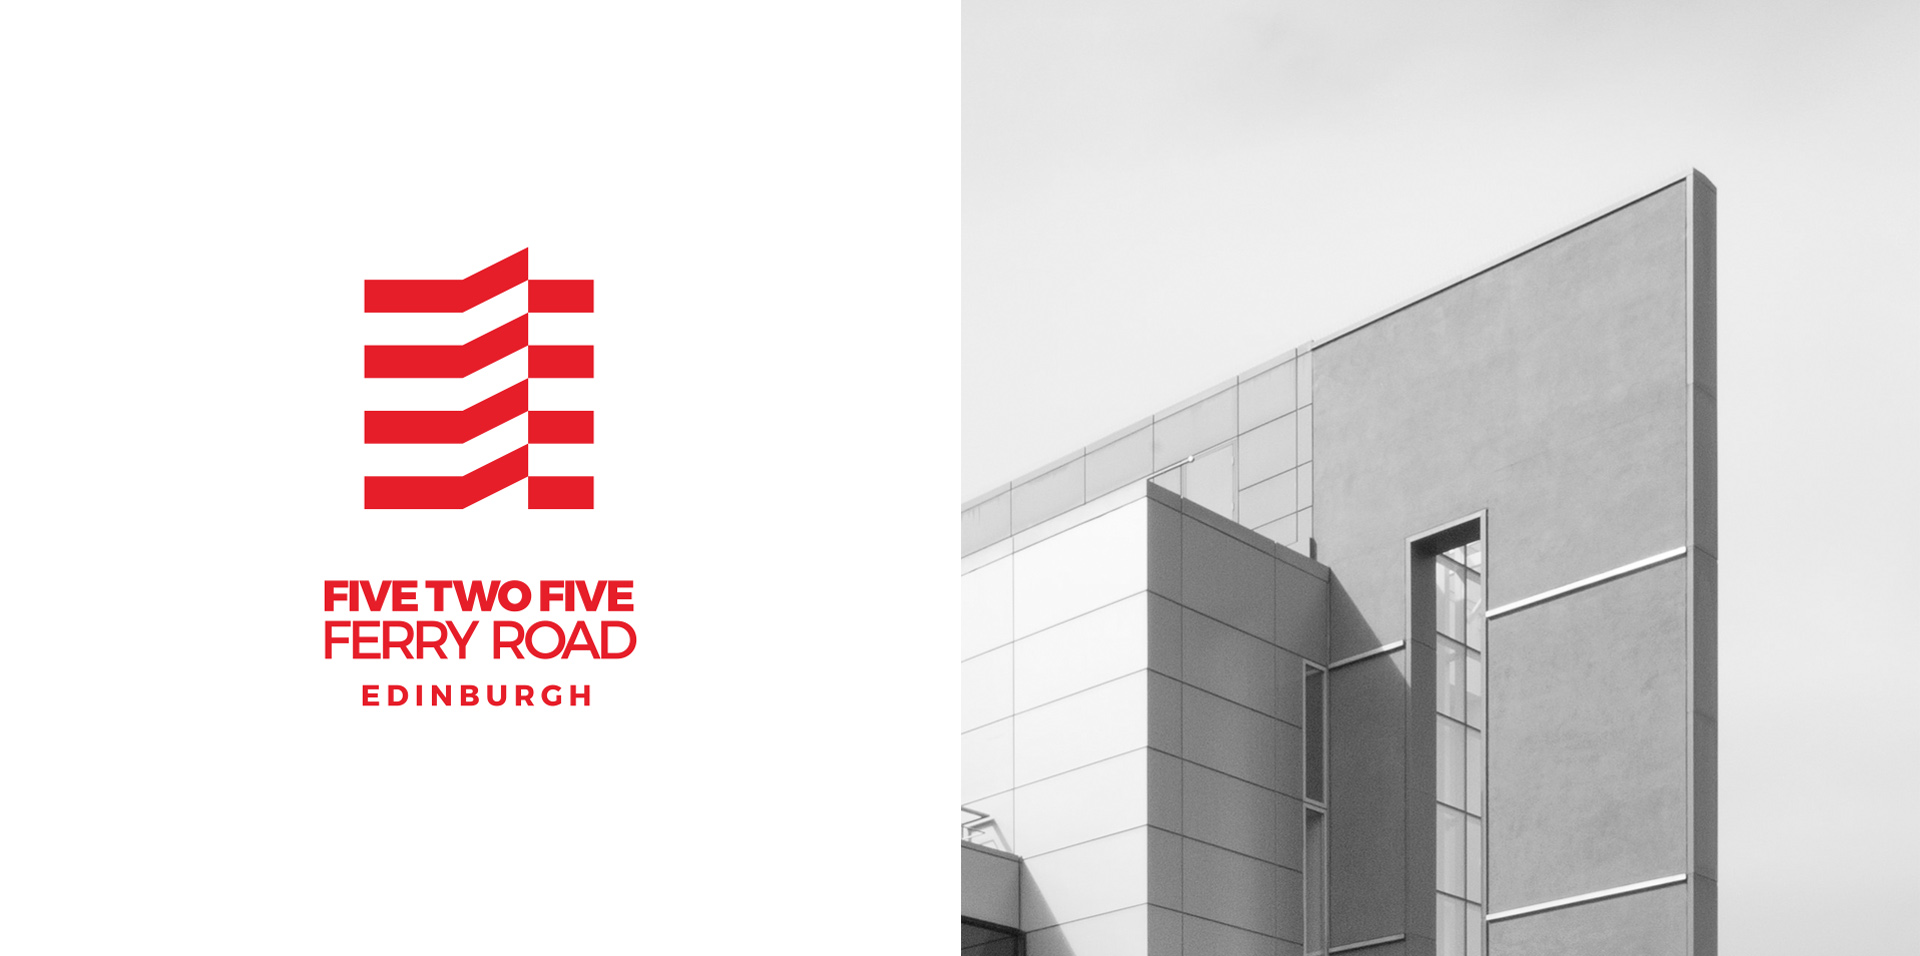 525 Ferry Road Edinburgh Identity